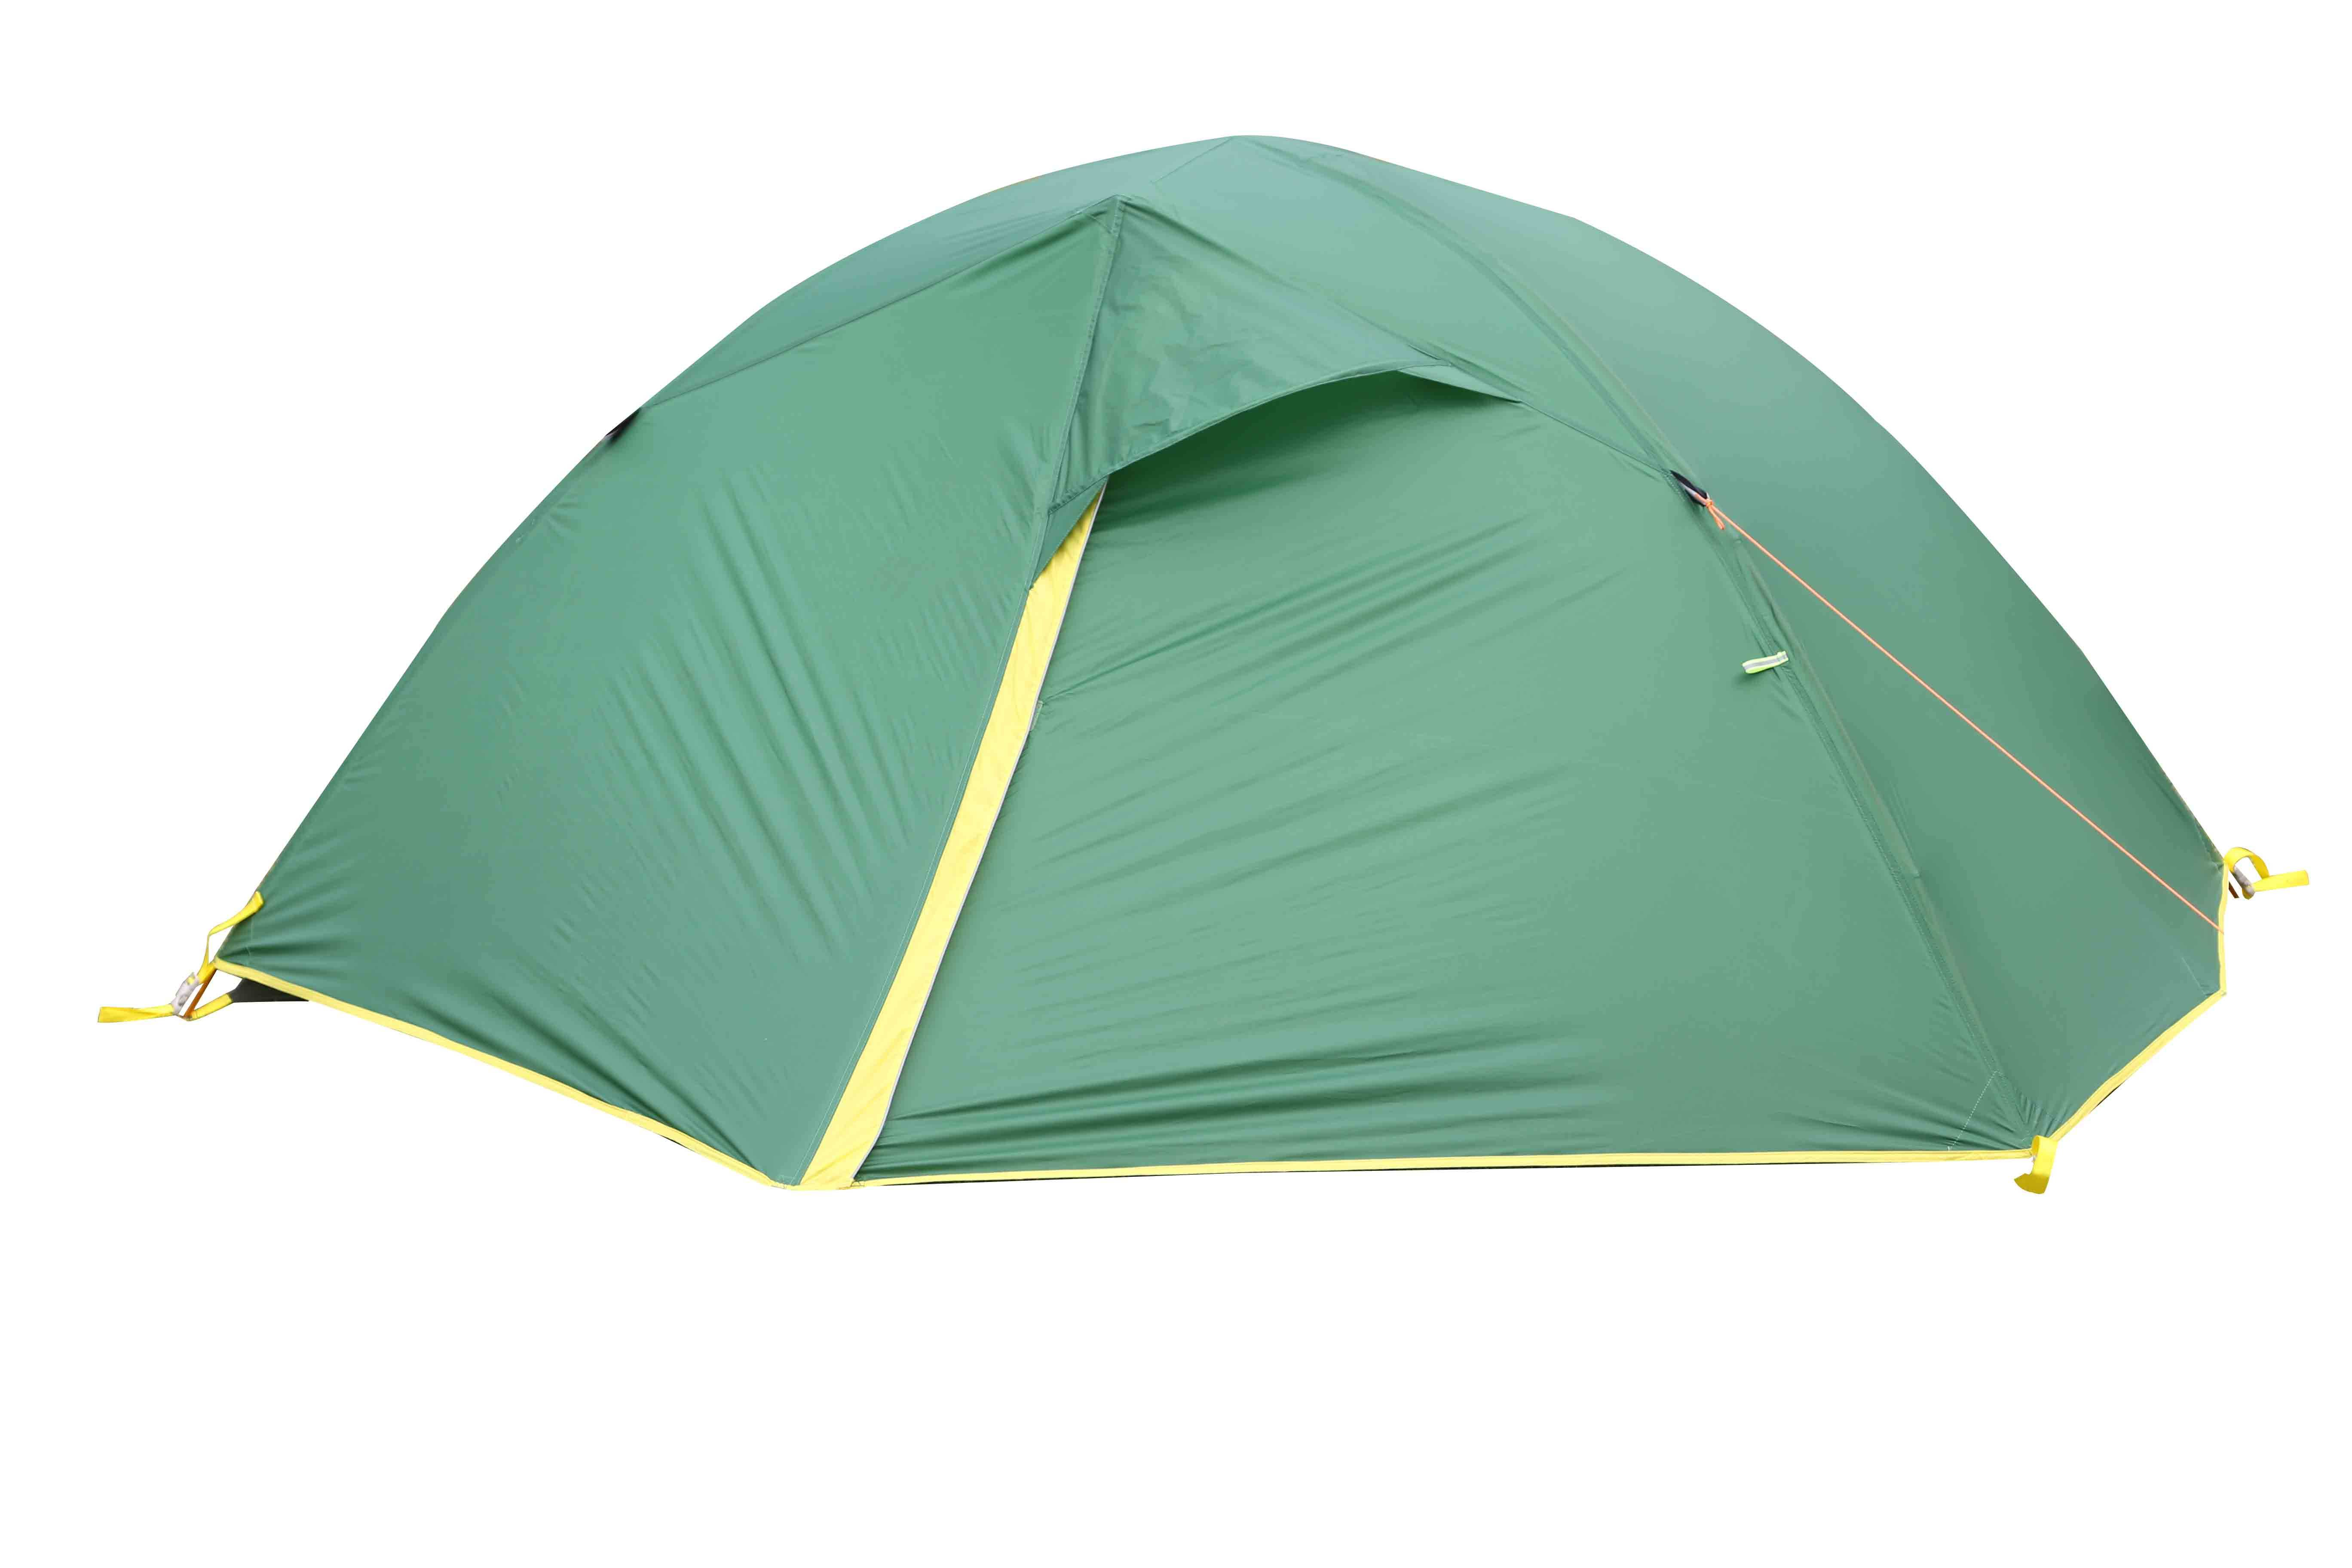 Camping tent Skyline 2